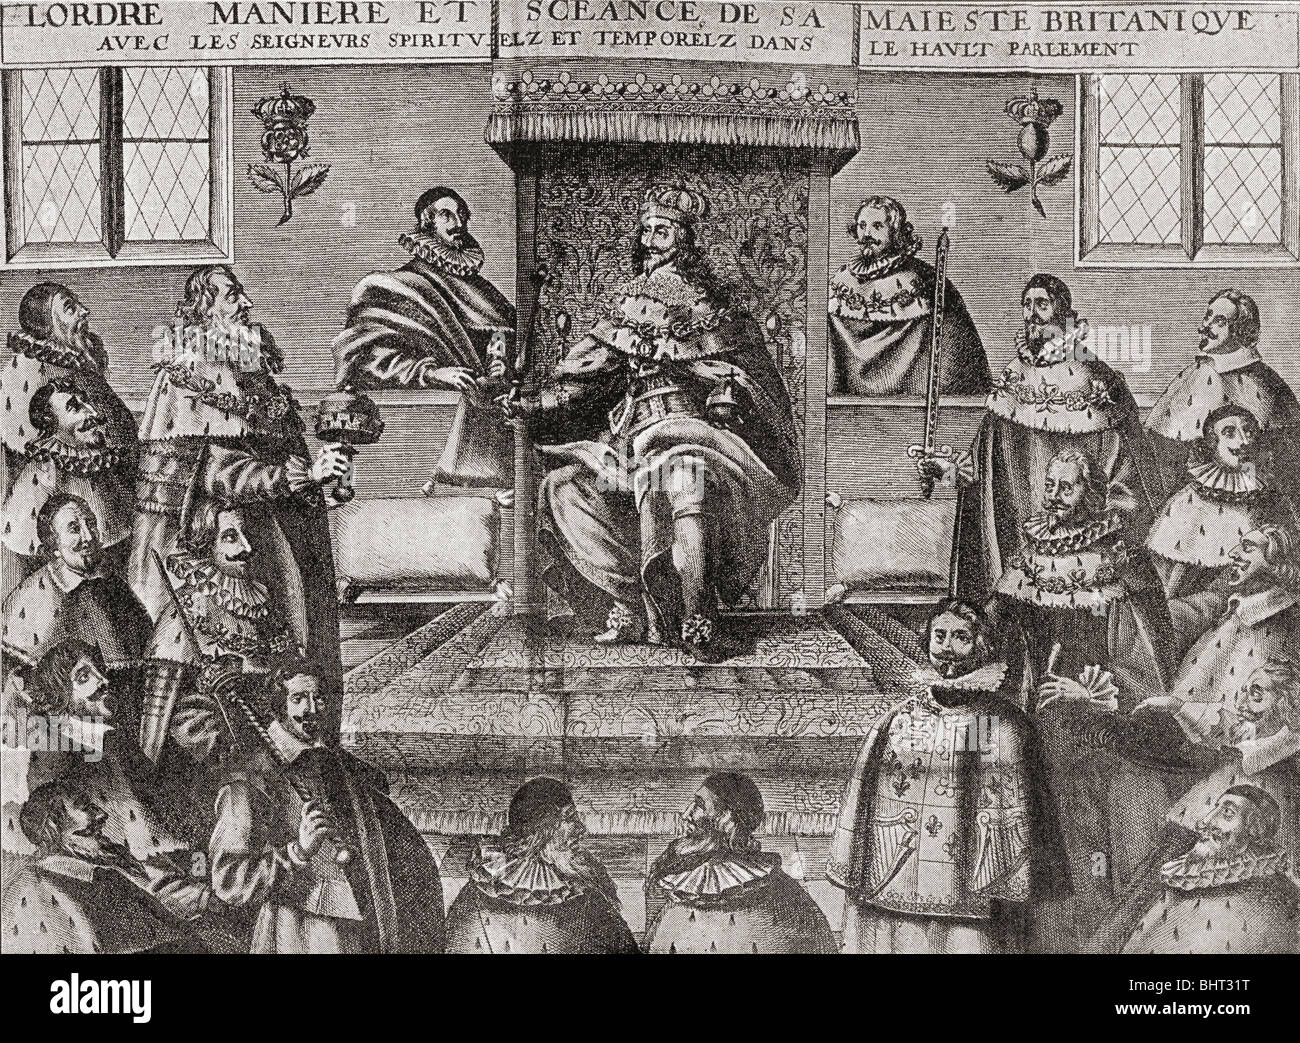 Charles i photos charles i images alamy - Chambre des lords angleterre ...